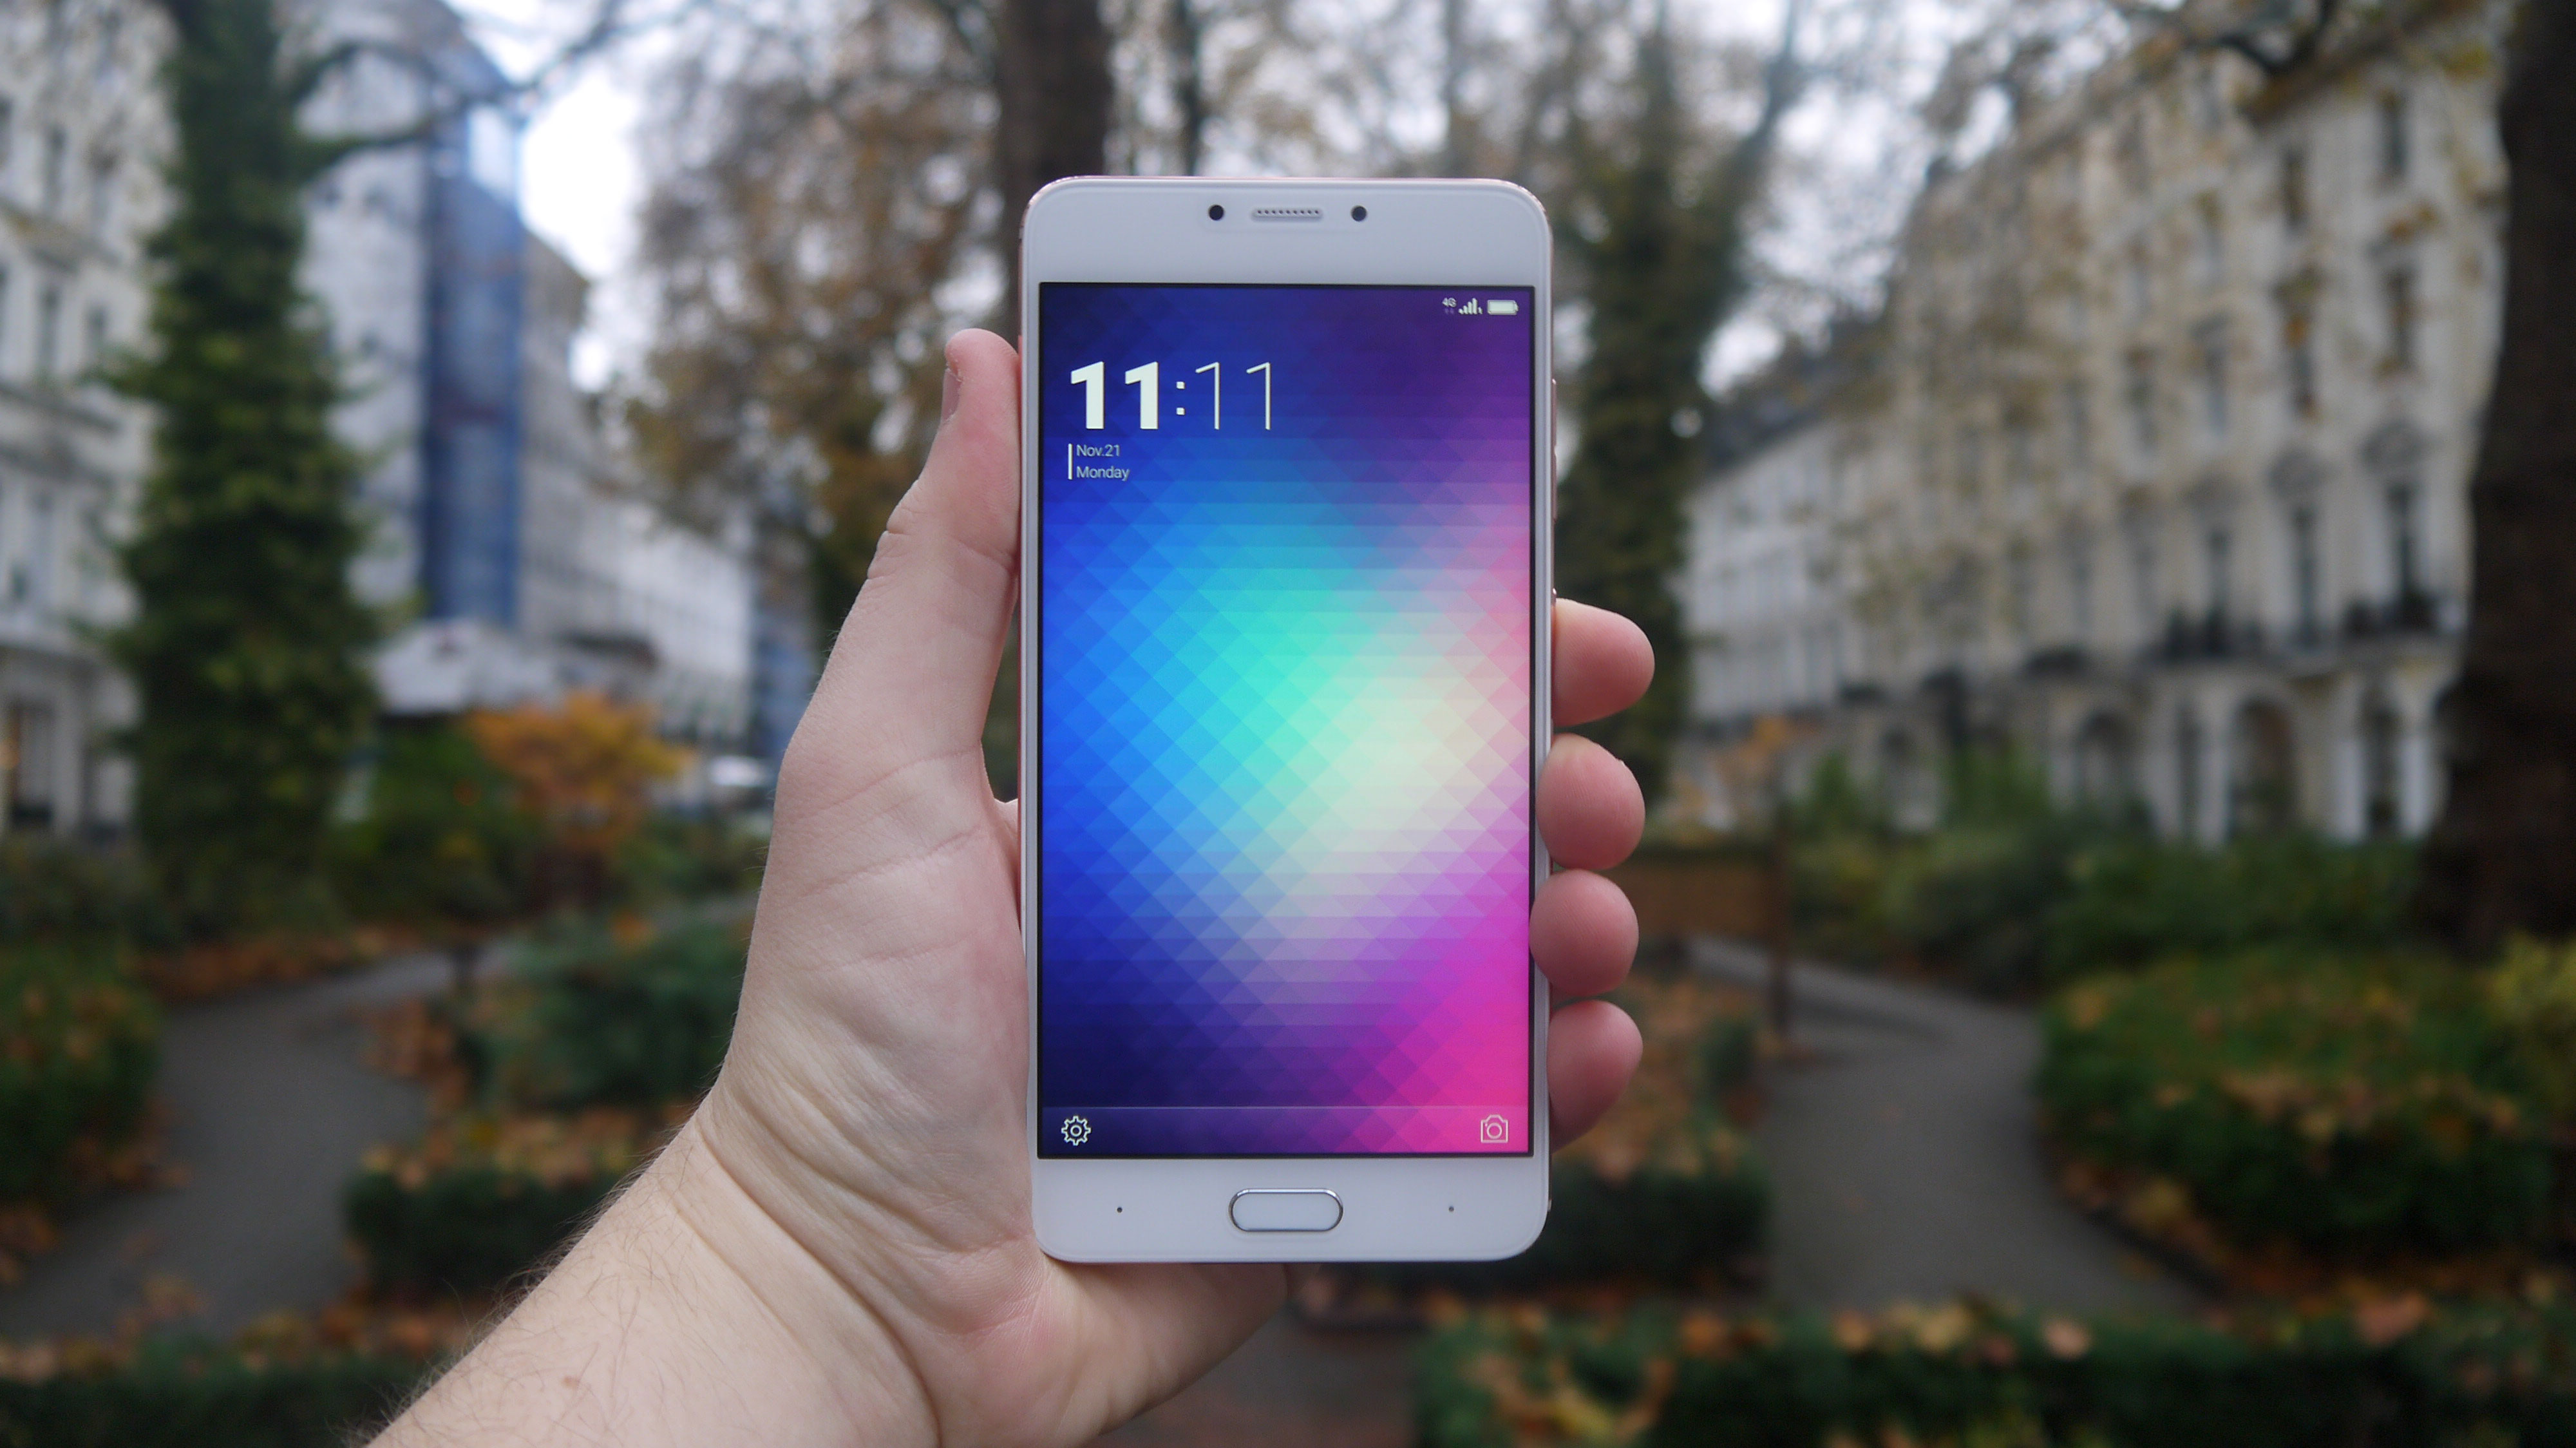 Meizu Mx6 Drippler Apps Games News Updates Accessories 32gb Ram 4gb Gold The Blu Vivo 6 Is Similar To In Many Regards But Also A Fair Amount Cheaper It Matches On Just About Every Specification